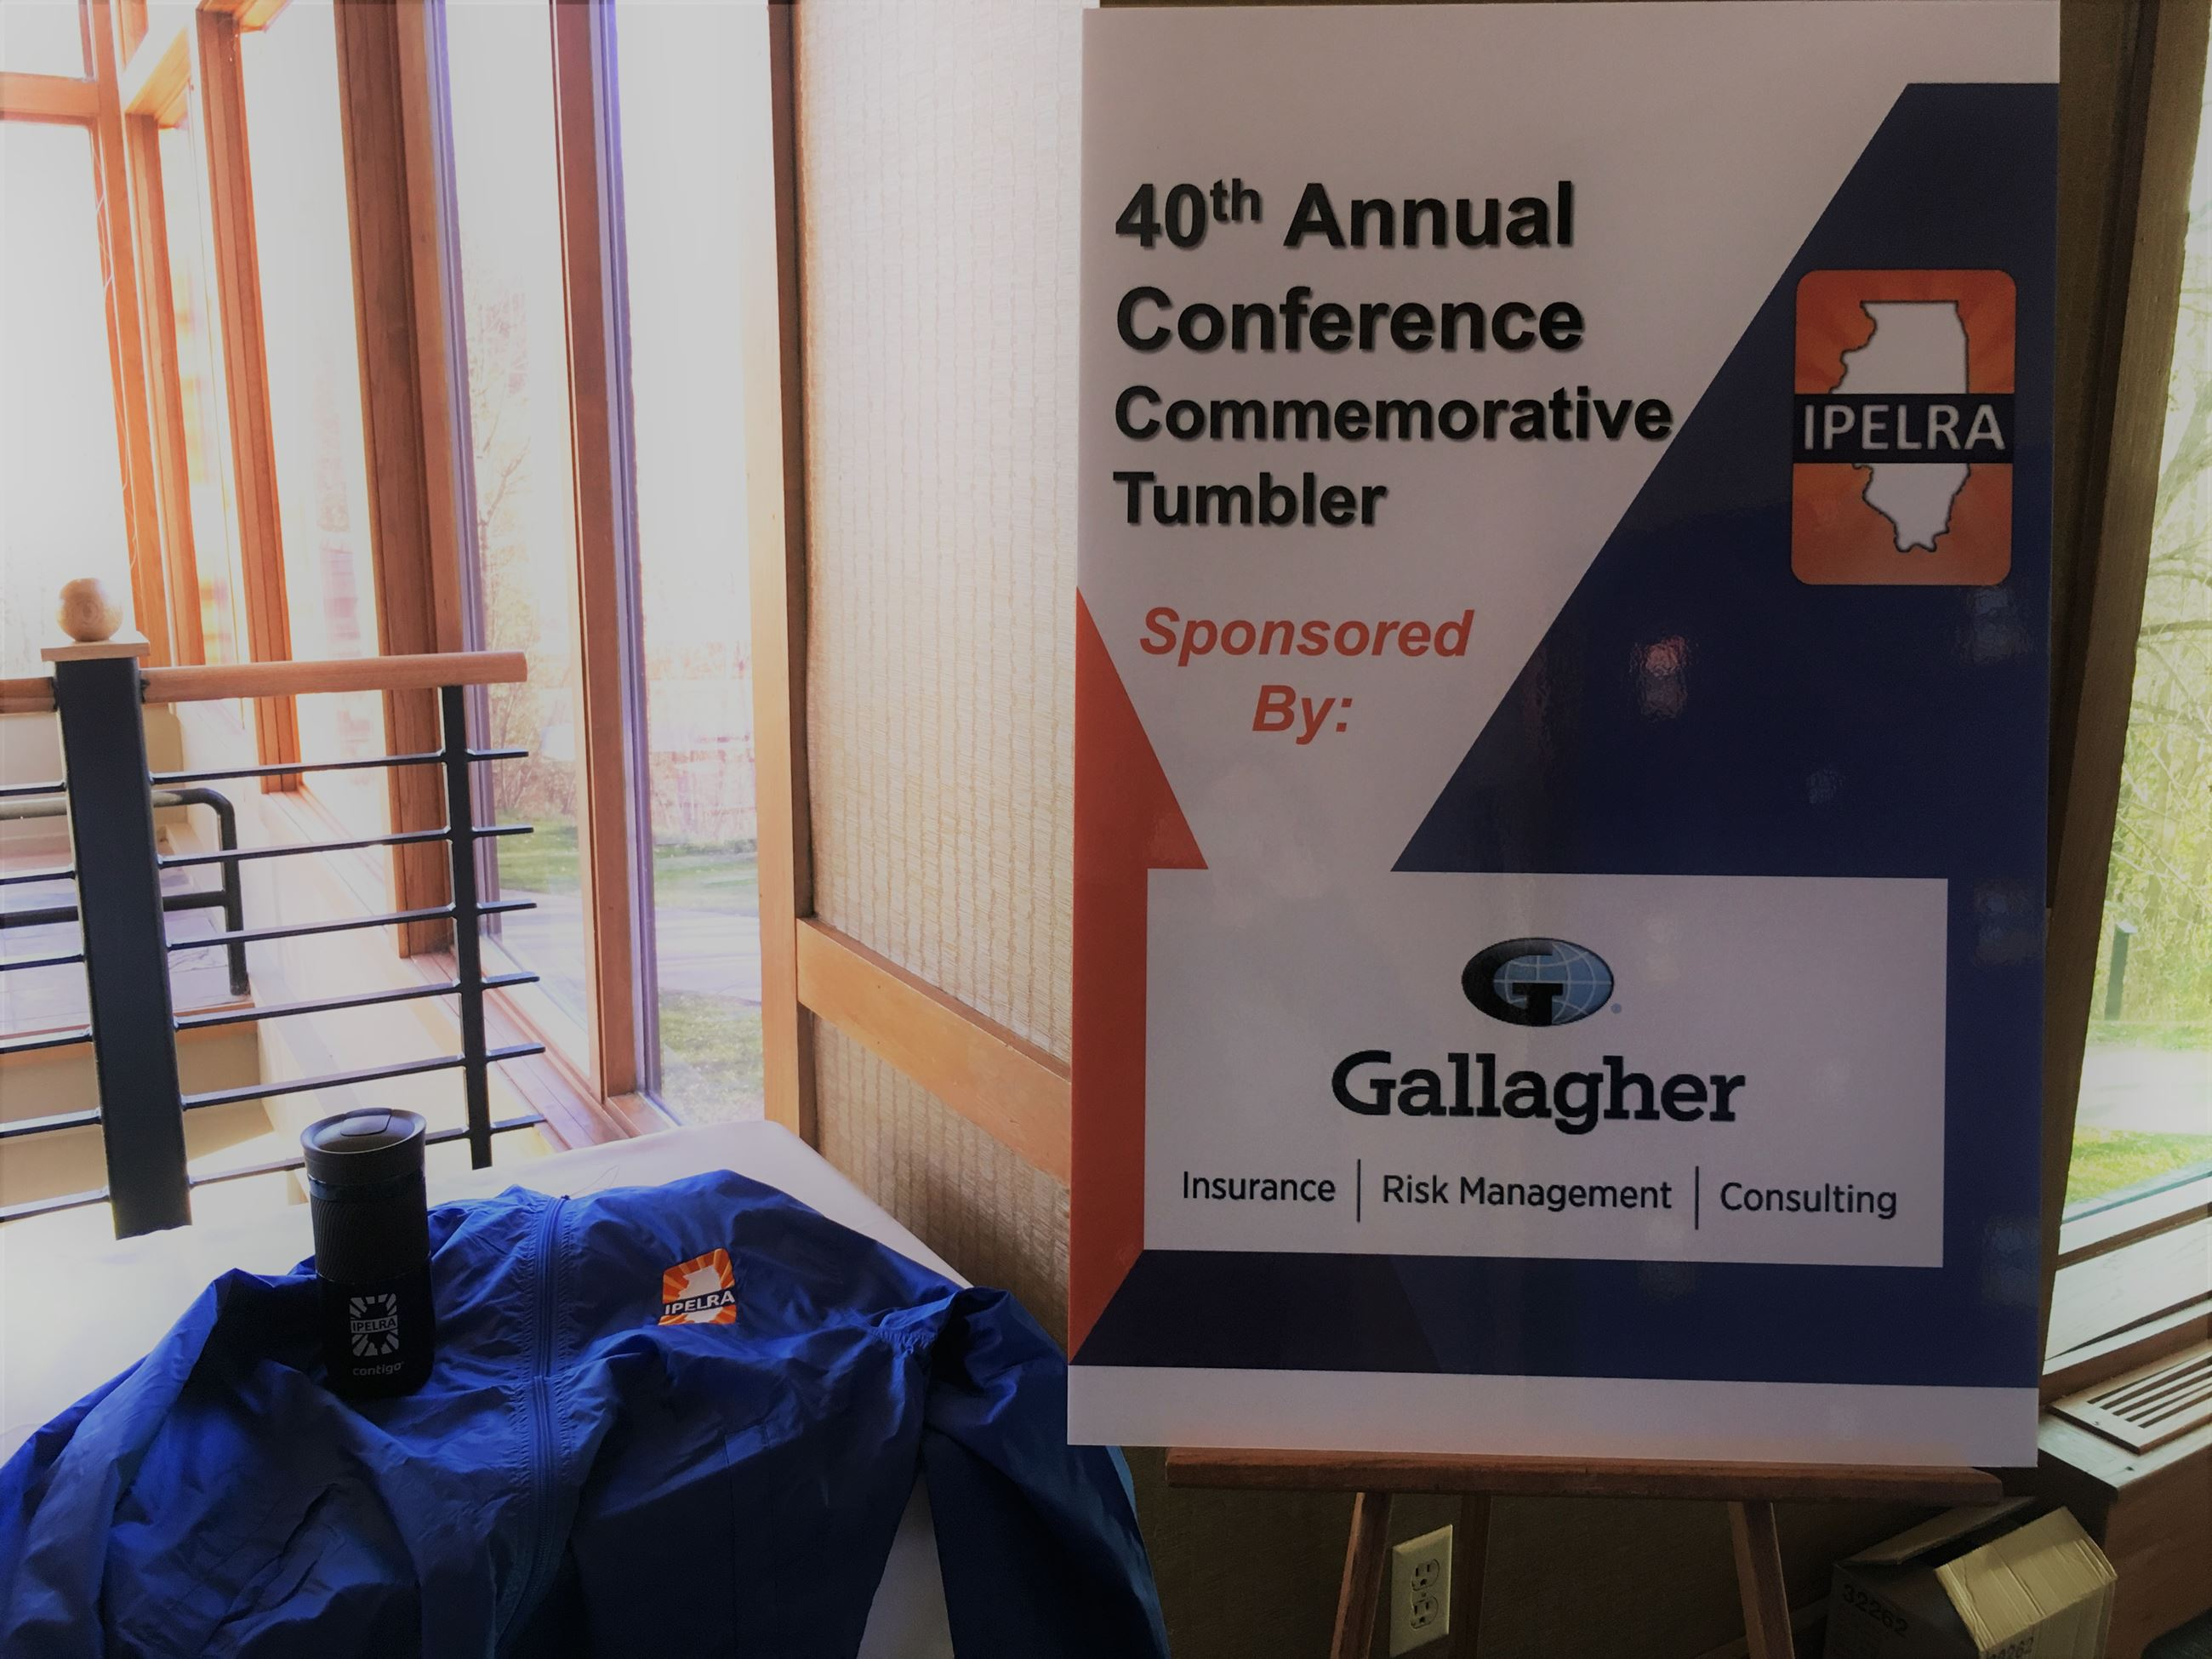 jacket, travel mug, and poster showing the sponsor Gallagher